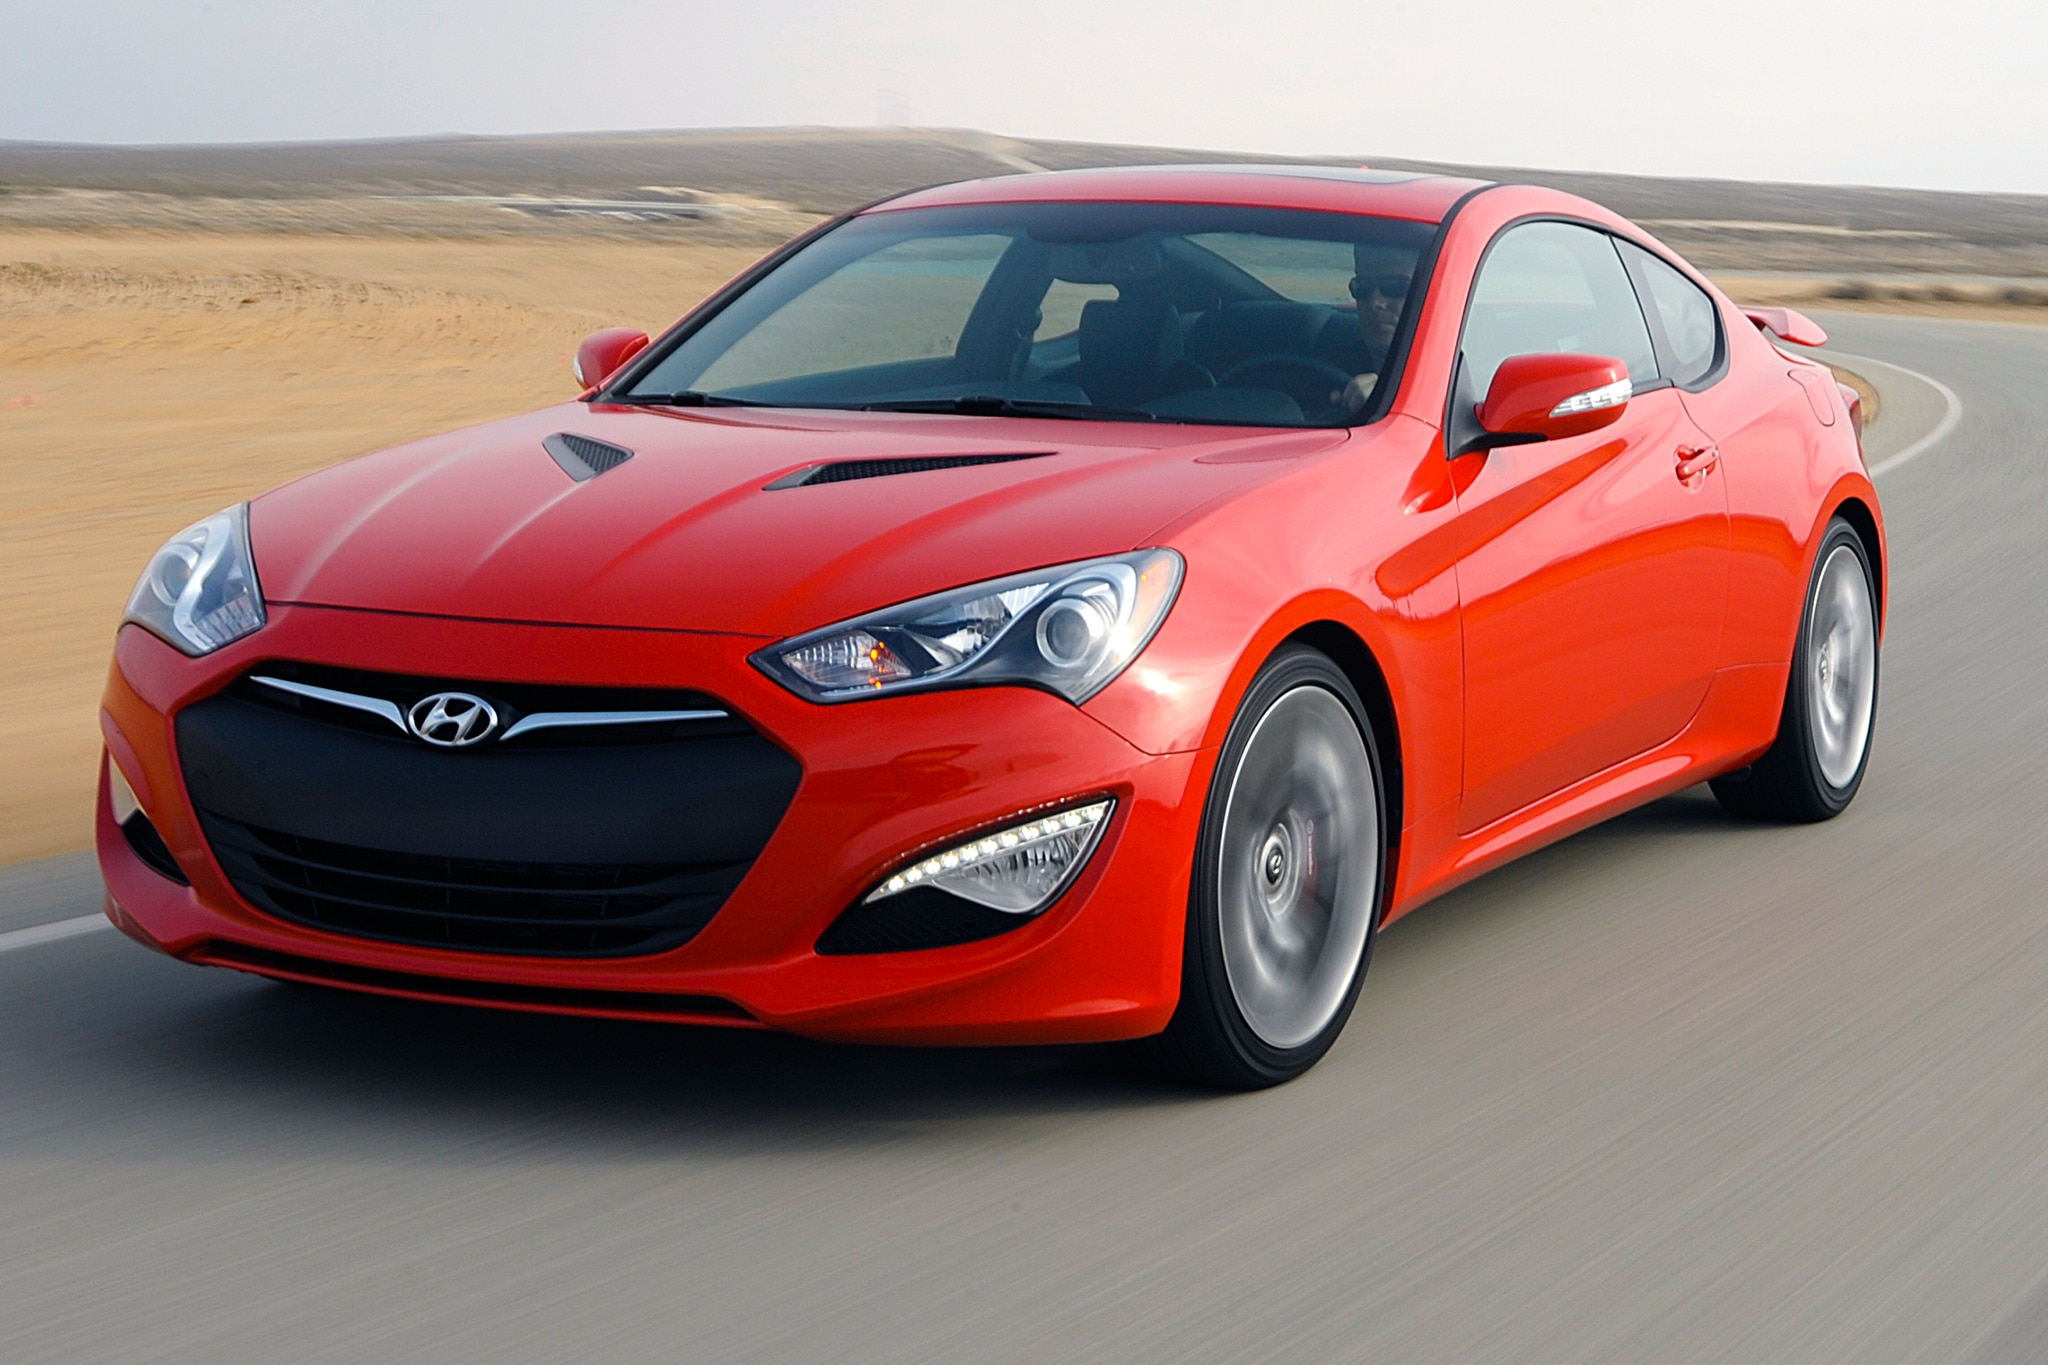 2014 hyundai genesis coupe priced at 27 245 automobile. Black Bedroom Furniture Sets. Home Design Ideas